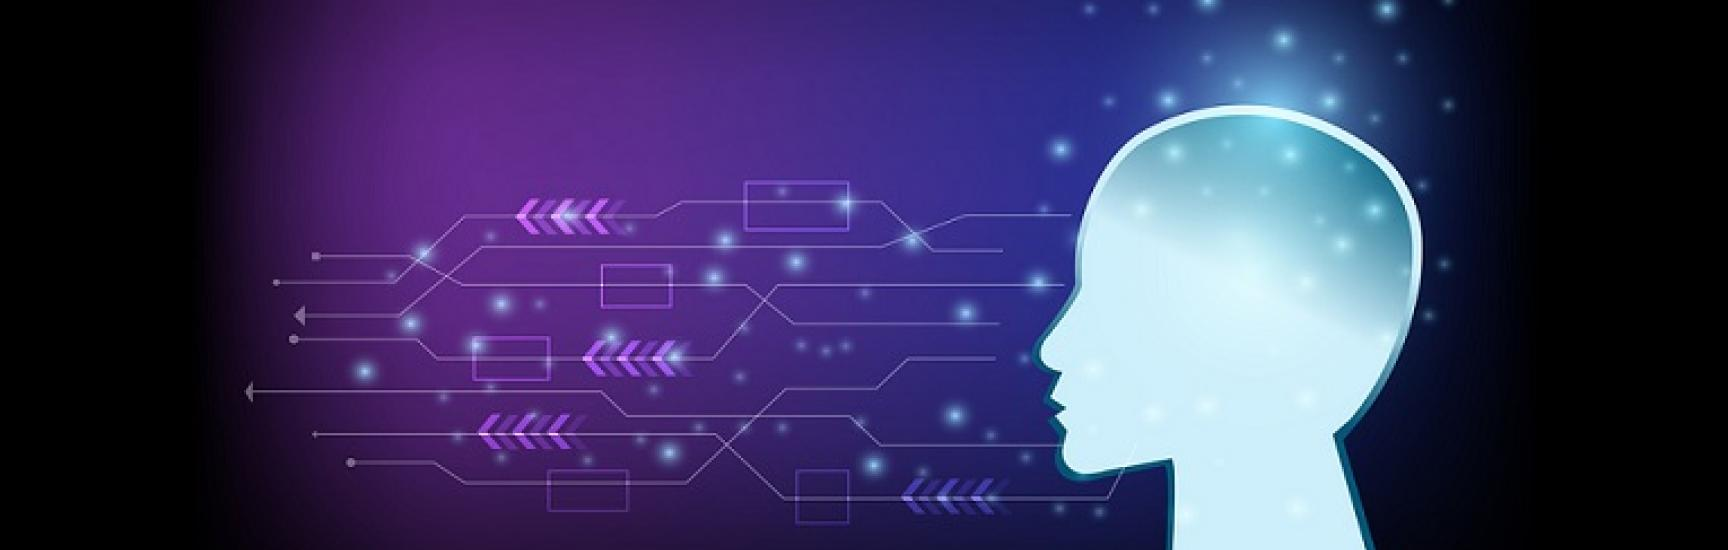 Artificial Intelligence & Machine Learning: Leveraging Technology Propels Brokerage